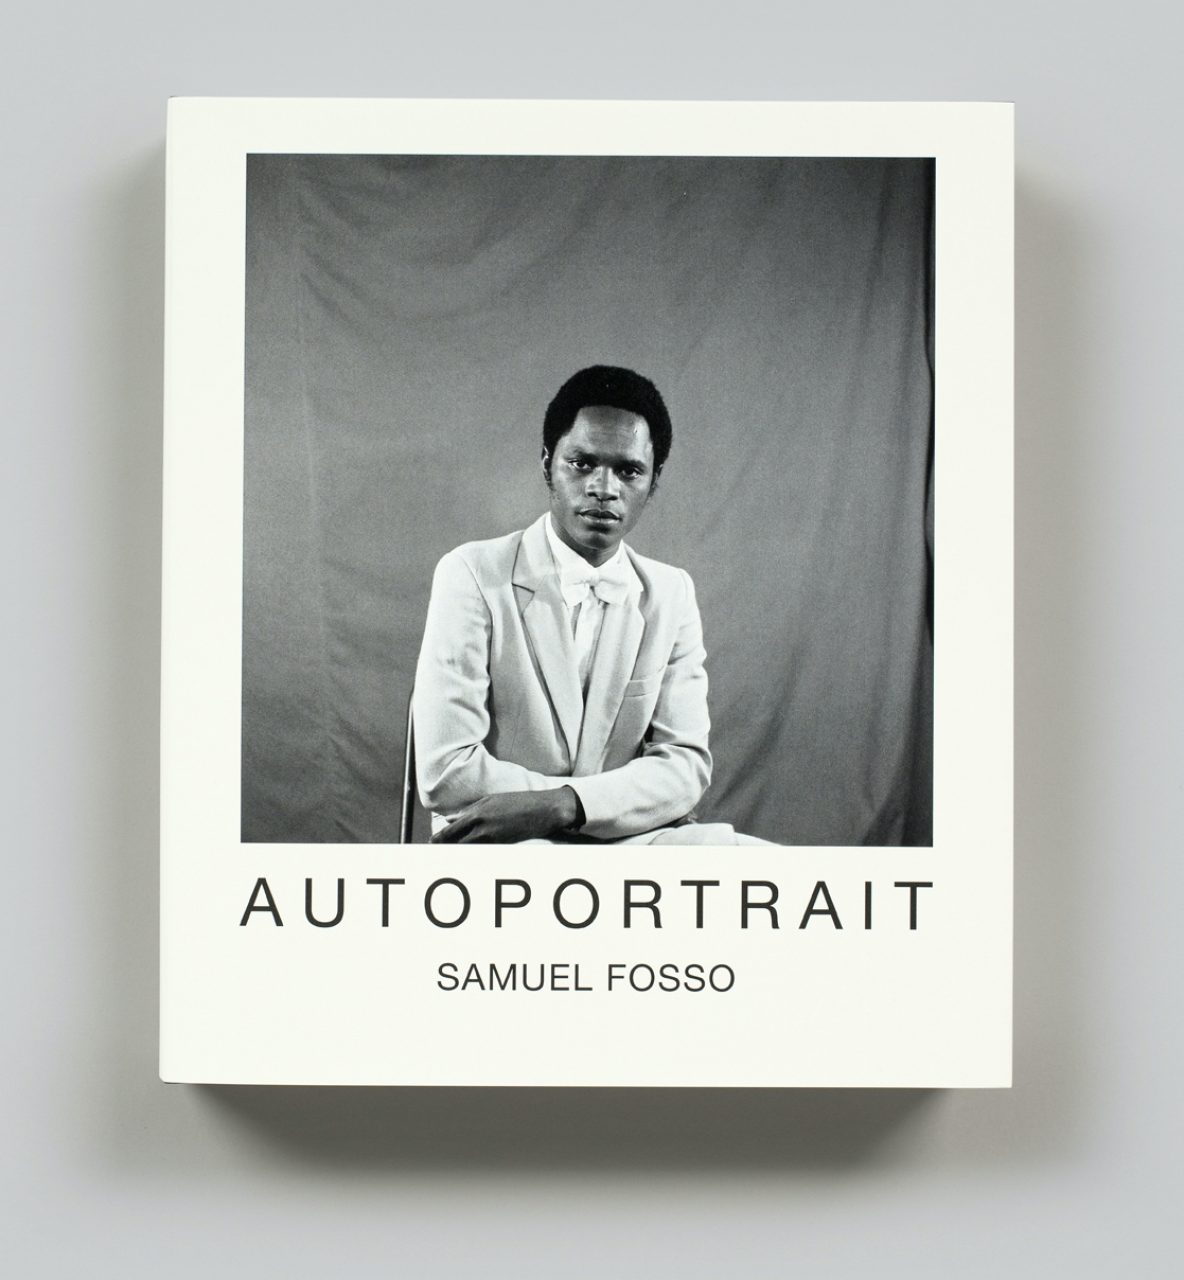 Samuel fosso autoportrait the walther collection 005